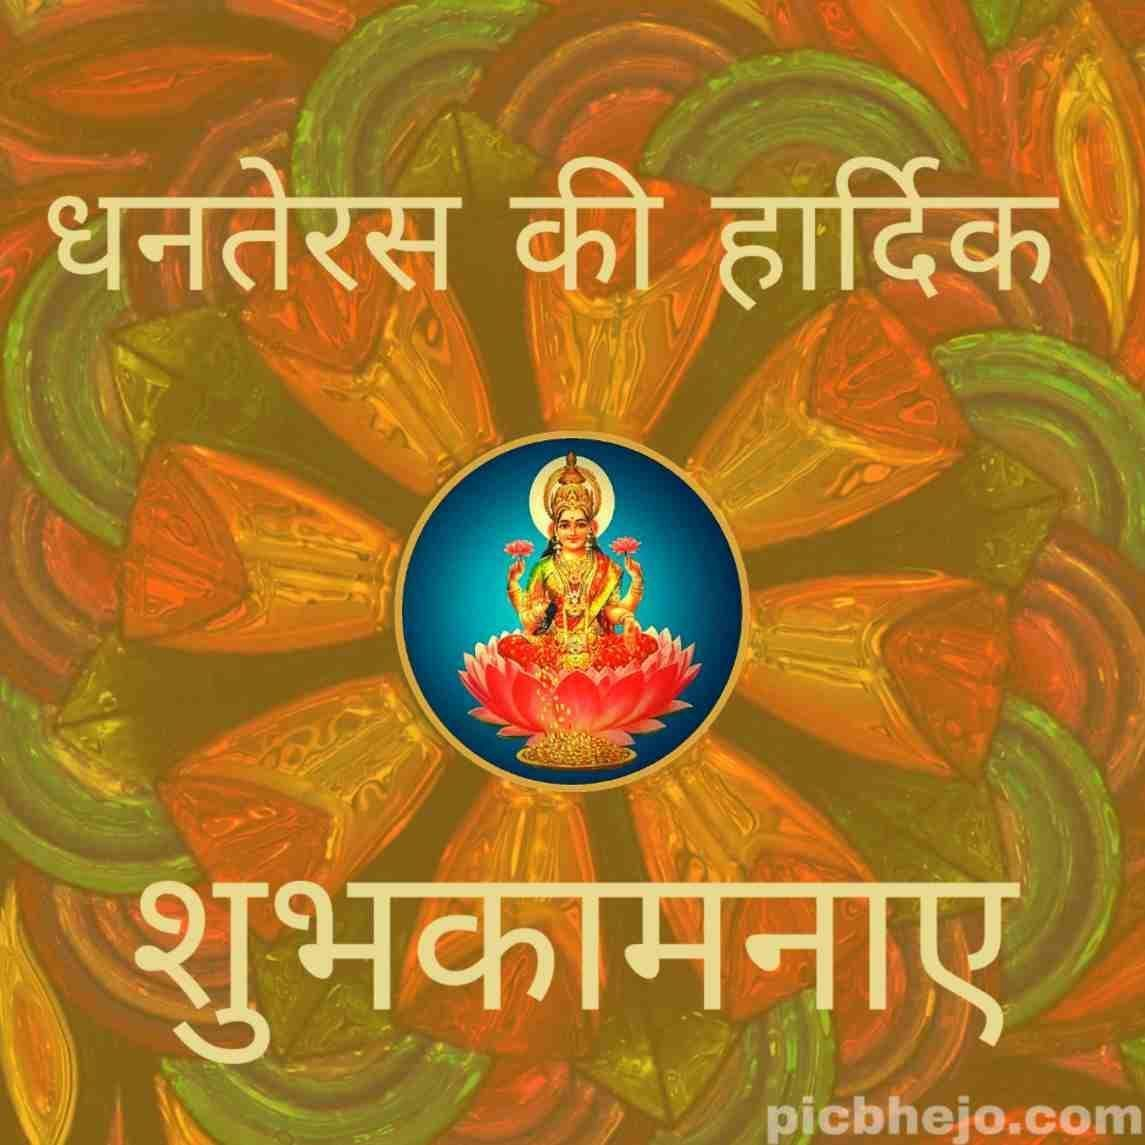 Happy Dhanteras 2019 Wishing Images Collection Free Download HD #happydhanteras Happy Dhanteras 2019 Wishing Images Collection Free Download HD #dhanteraswishes Happy Dhanteras 2019 Wishing Images Collection Free Download HD #happydhanteras Happy Dhanteras 2019 Wishing Images Collection Free Download HD #dhanteraswishes Happy Dhanteras 2019 Wishing Images Collection Free Download HD #happydhanteras Happy Dhanteras 2019 Wishing Images Collection Free Download HD #dhanteraswishes Happy Dhanteras 2 #happydhanteras